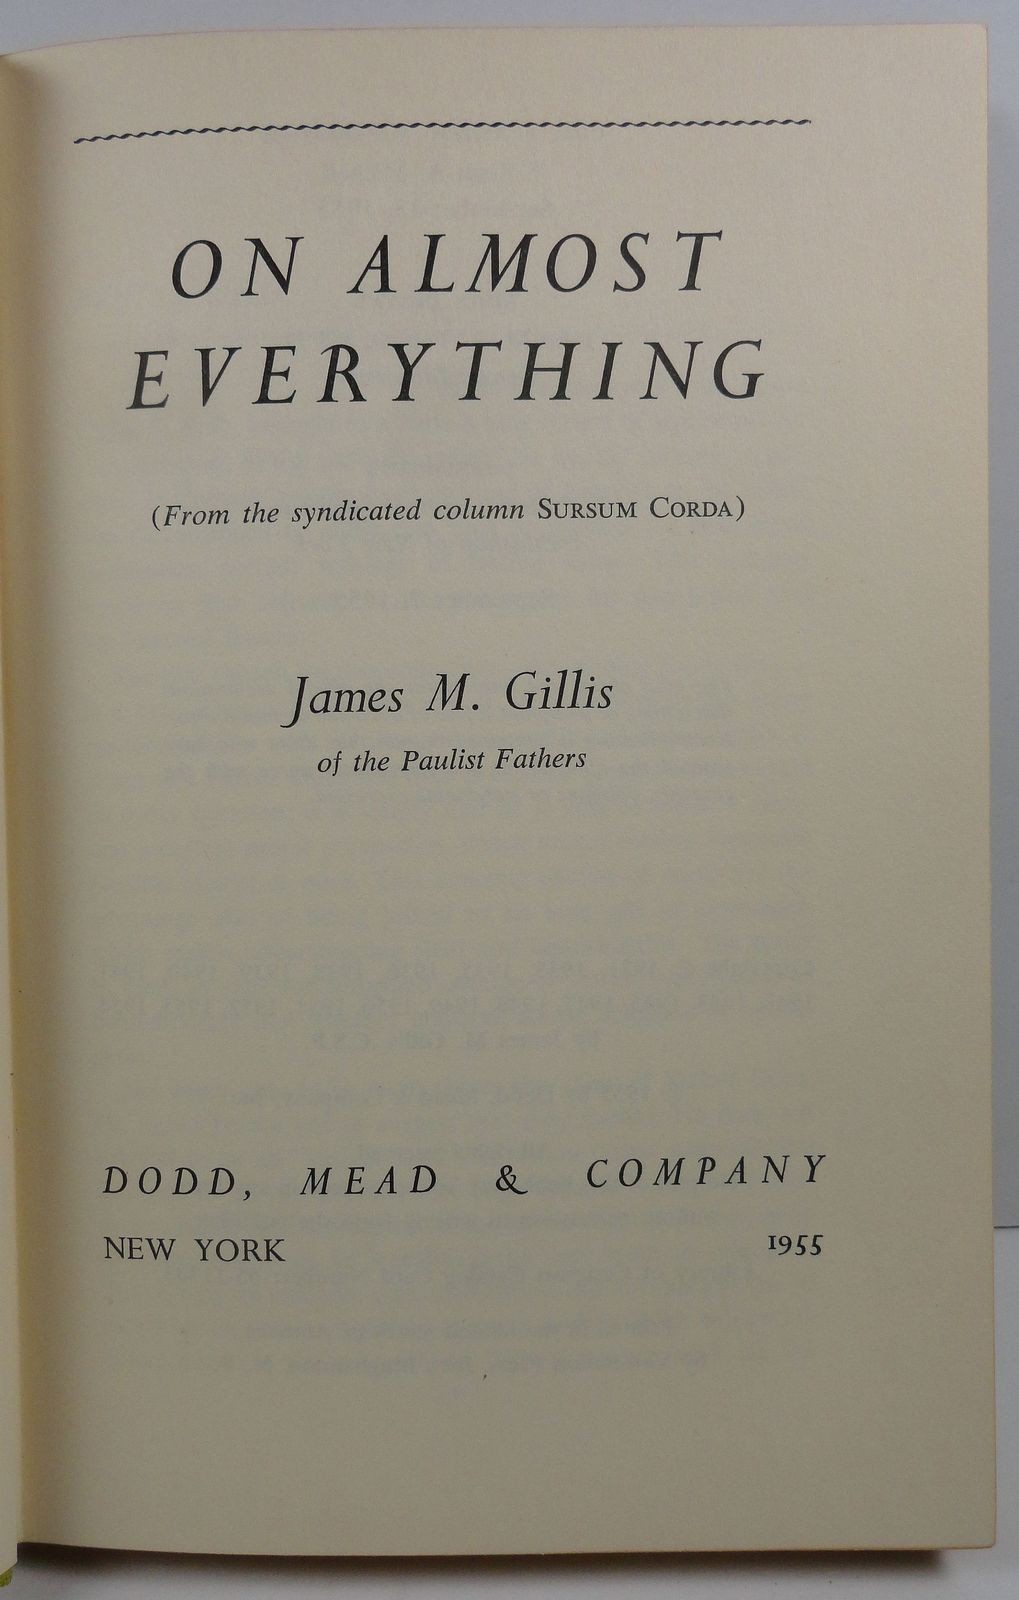 On Almost Everything by James M. Gillis 1955 Dodd, Mead